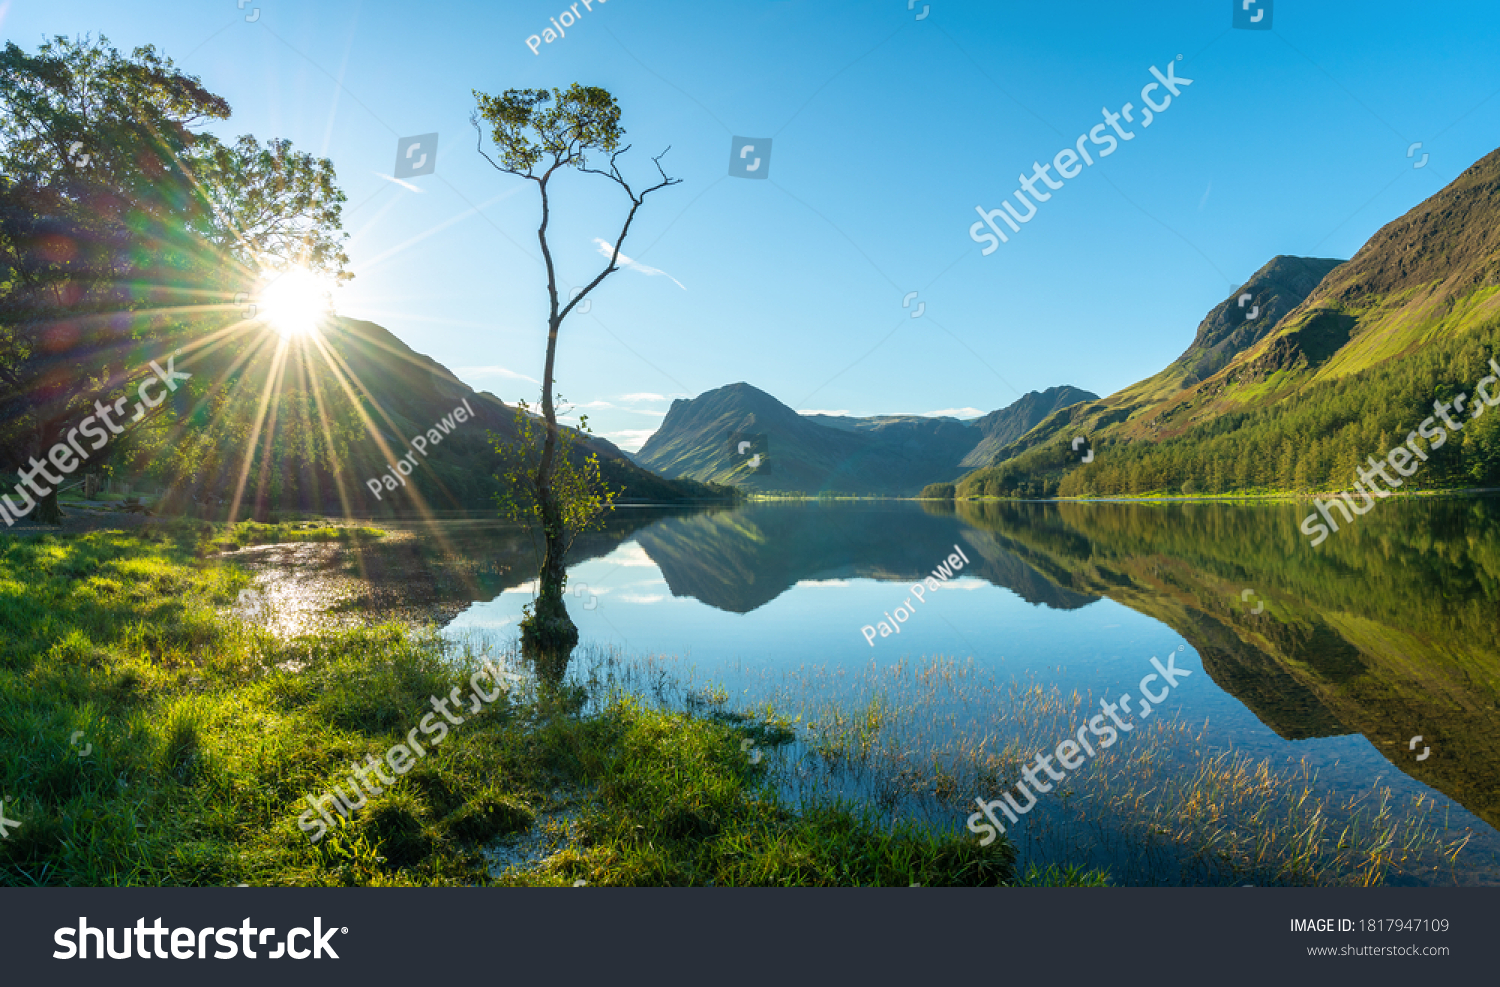 Lone tree and Buttermere lake at Sunrise. Lake District. England #1817947109